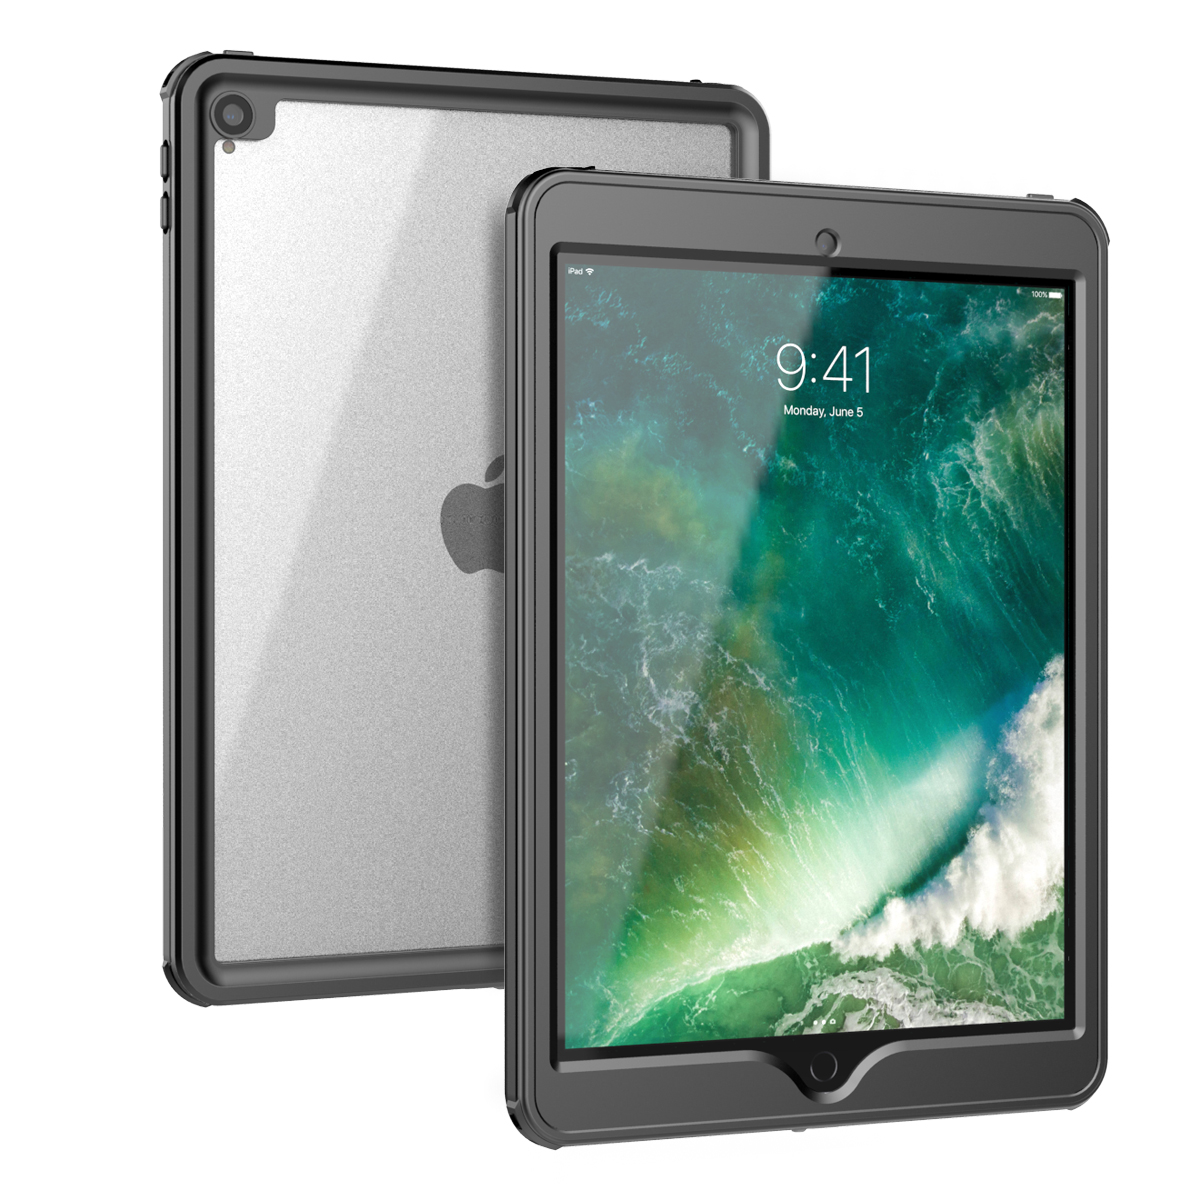 For IPad Air 2019 Waterproof Case Underwater 360 Full Protection Clear Shockproof Cover For IPad Air 3 2019/ IPad Pro 10.5 Case